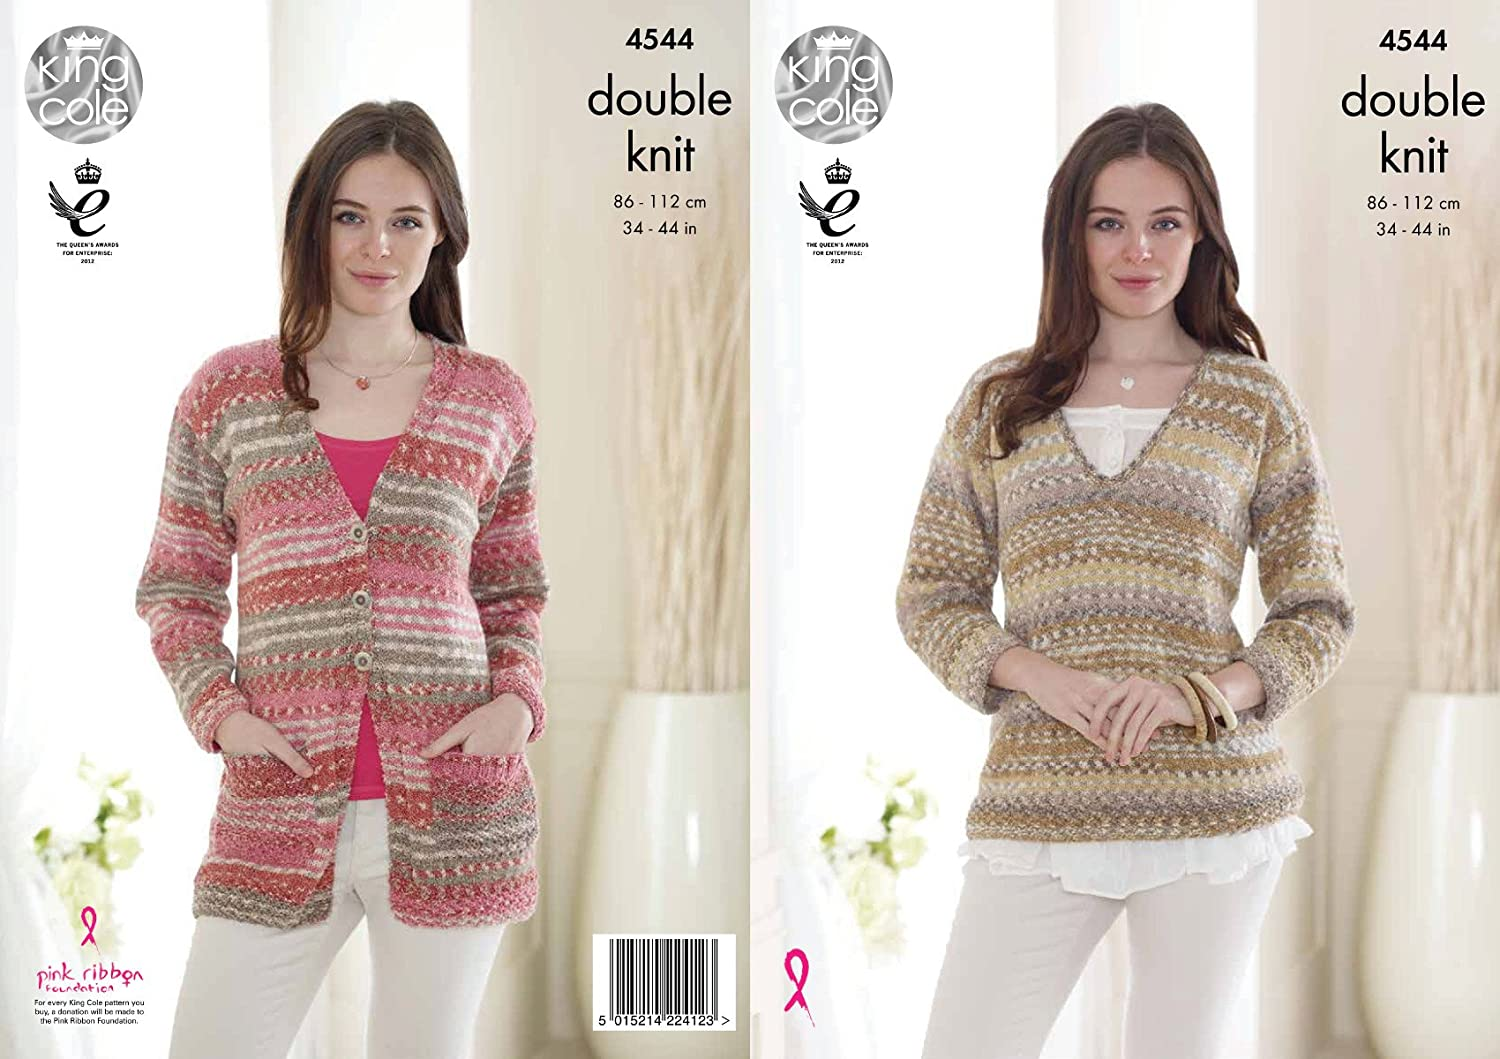 King Cole Womens Double Knitting Pattern Ladies V Neck Cardigan & Sweater Drifter DK (4544)